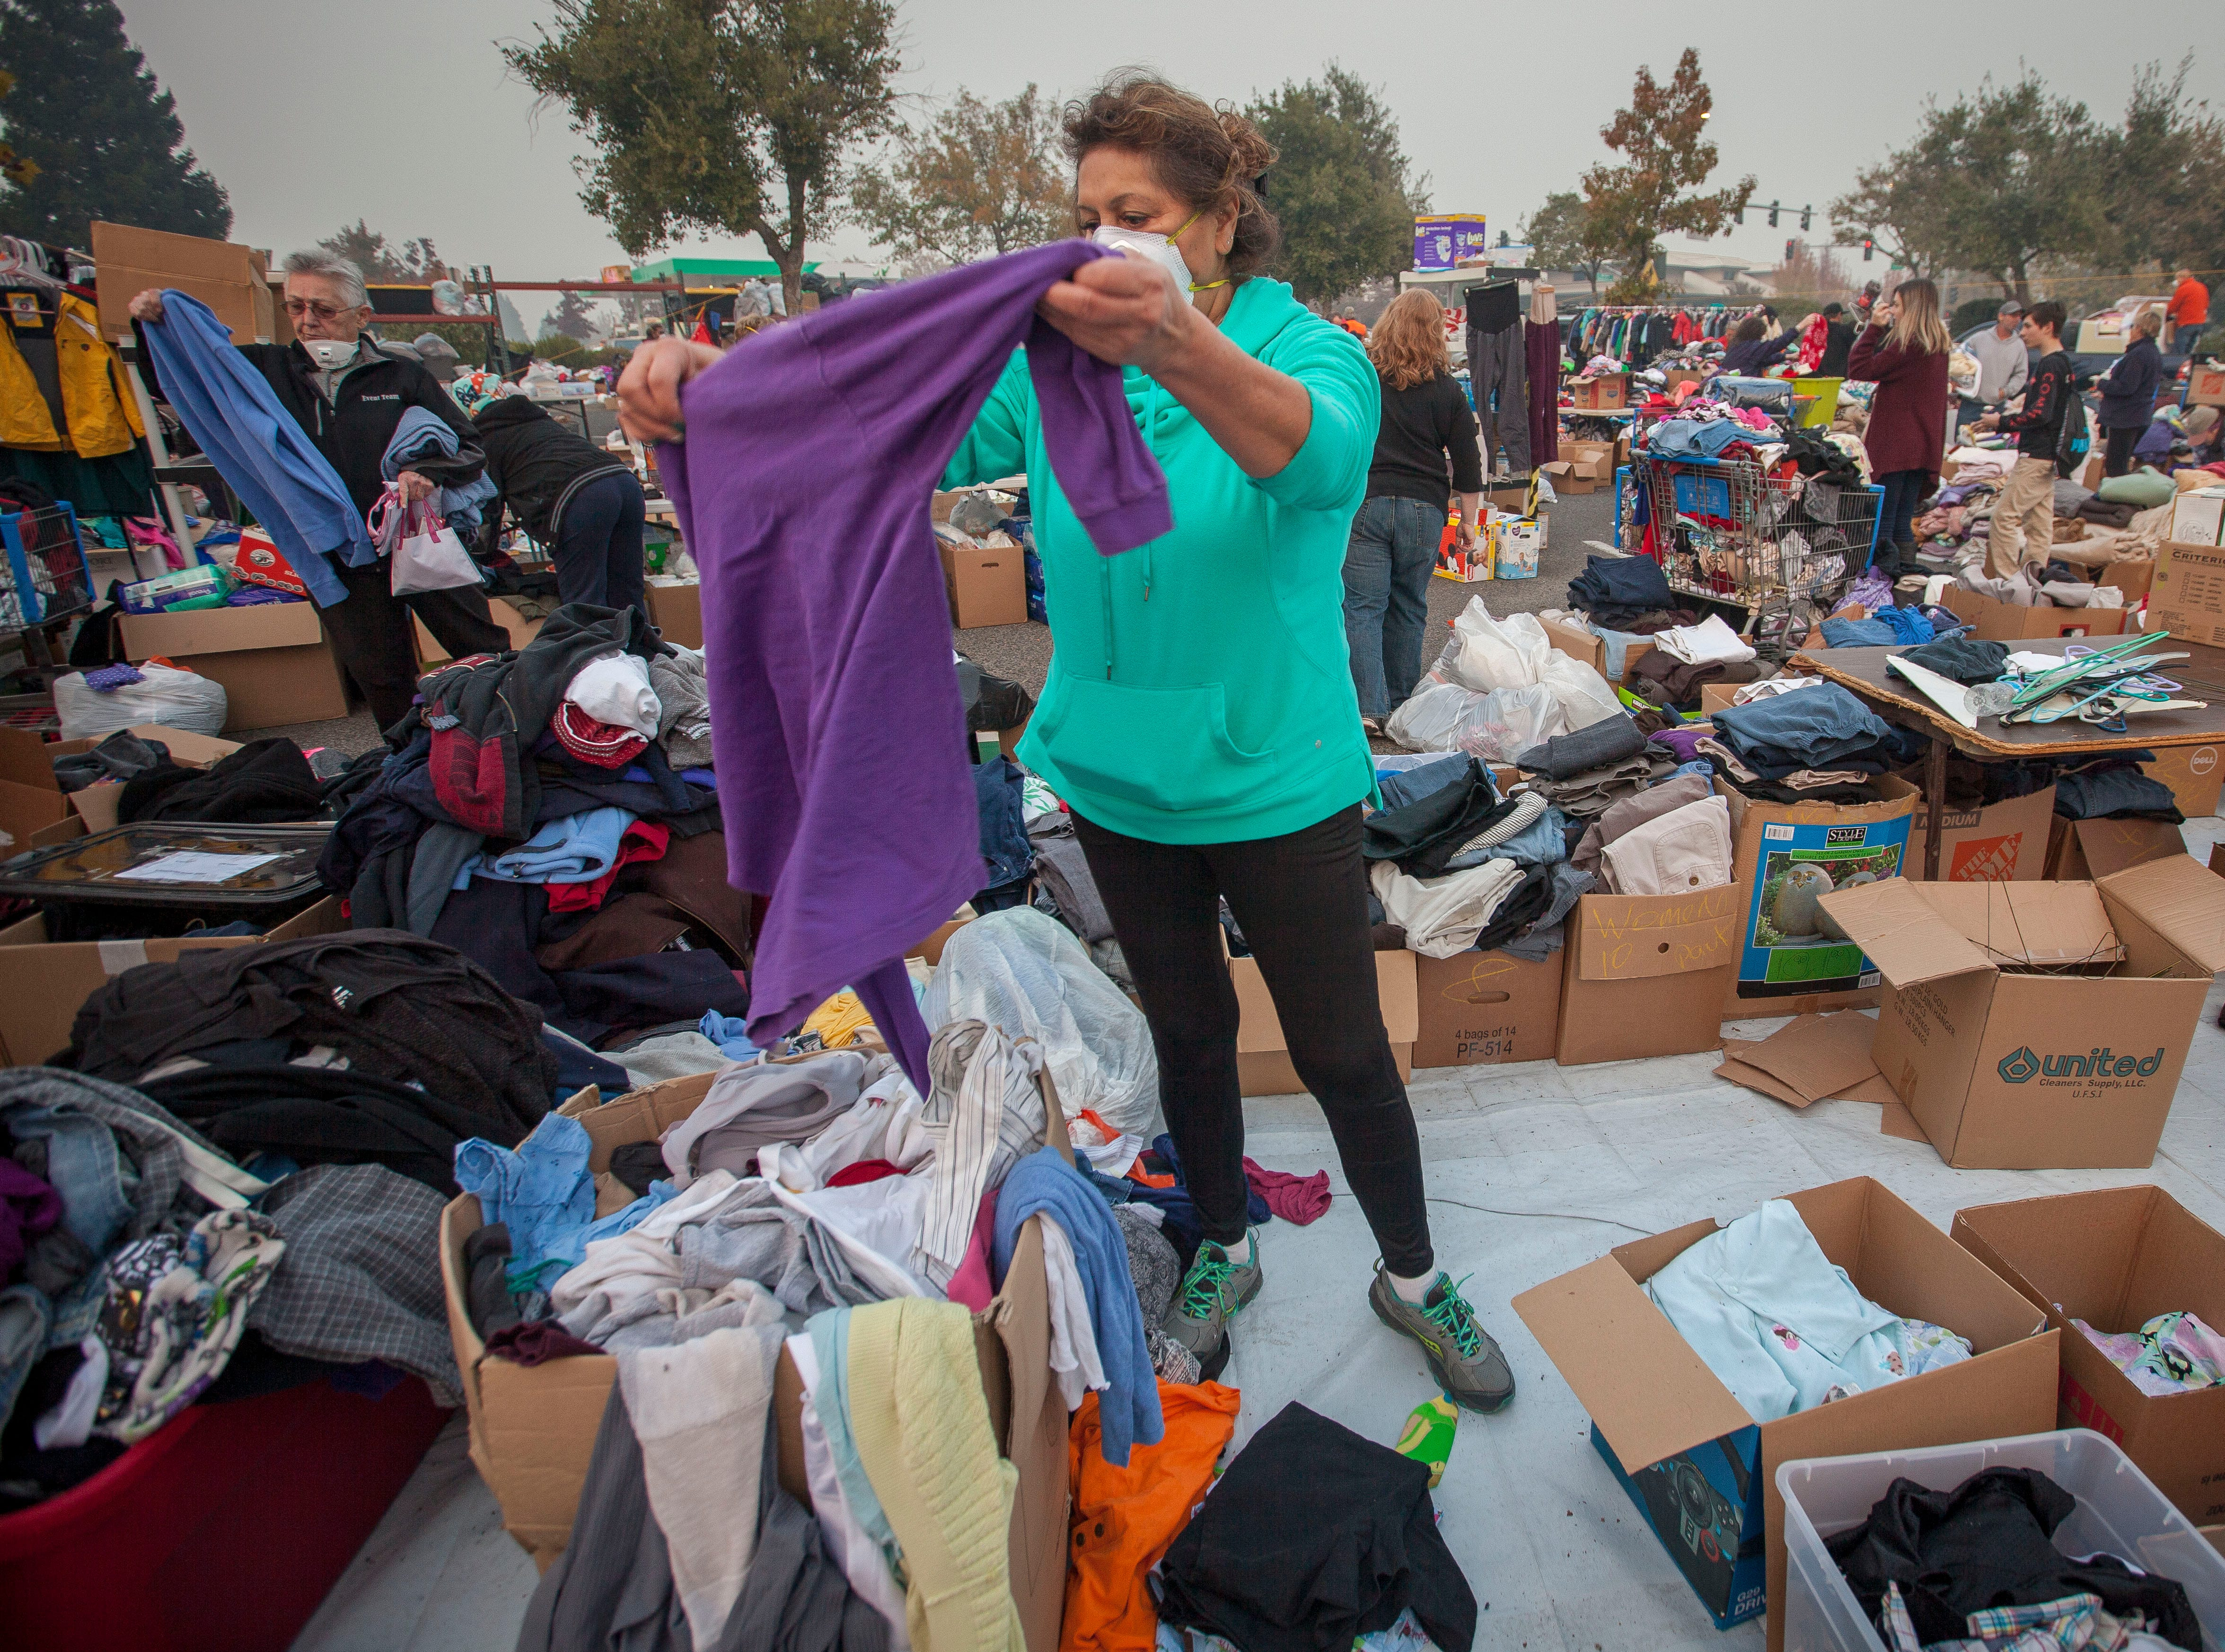 Maria Lewis, a volunteer, folds and sorts boxes of donated  clothing for the people who have taken refuge in the Walmart parking lot in Chico, CA, Wednesday, November 14, 2018. Lewis who lives north of Chico, had the day off and decided she needed to be here helping those who have suffered from the Camp Fire.